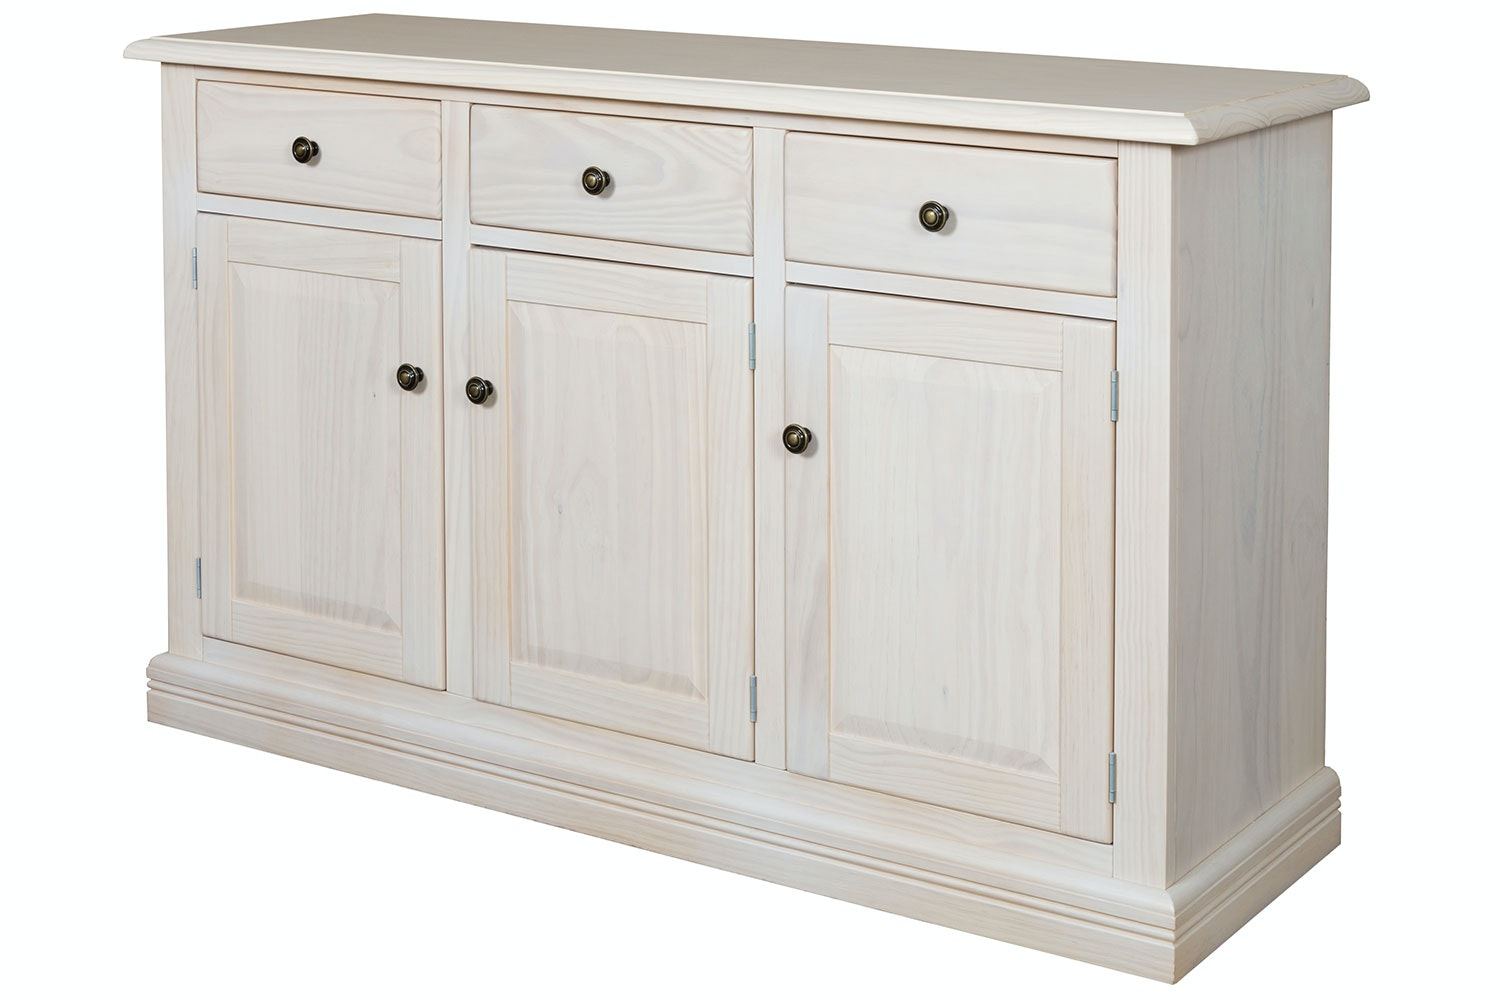 Waihi 3 Door Buffet by Coastwood Furniture